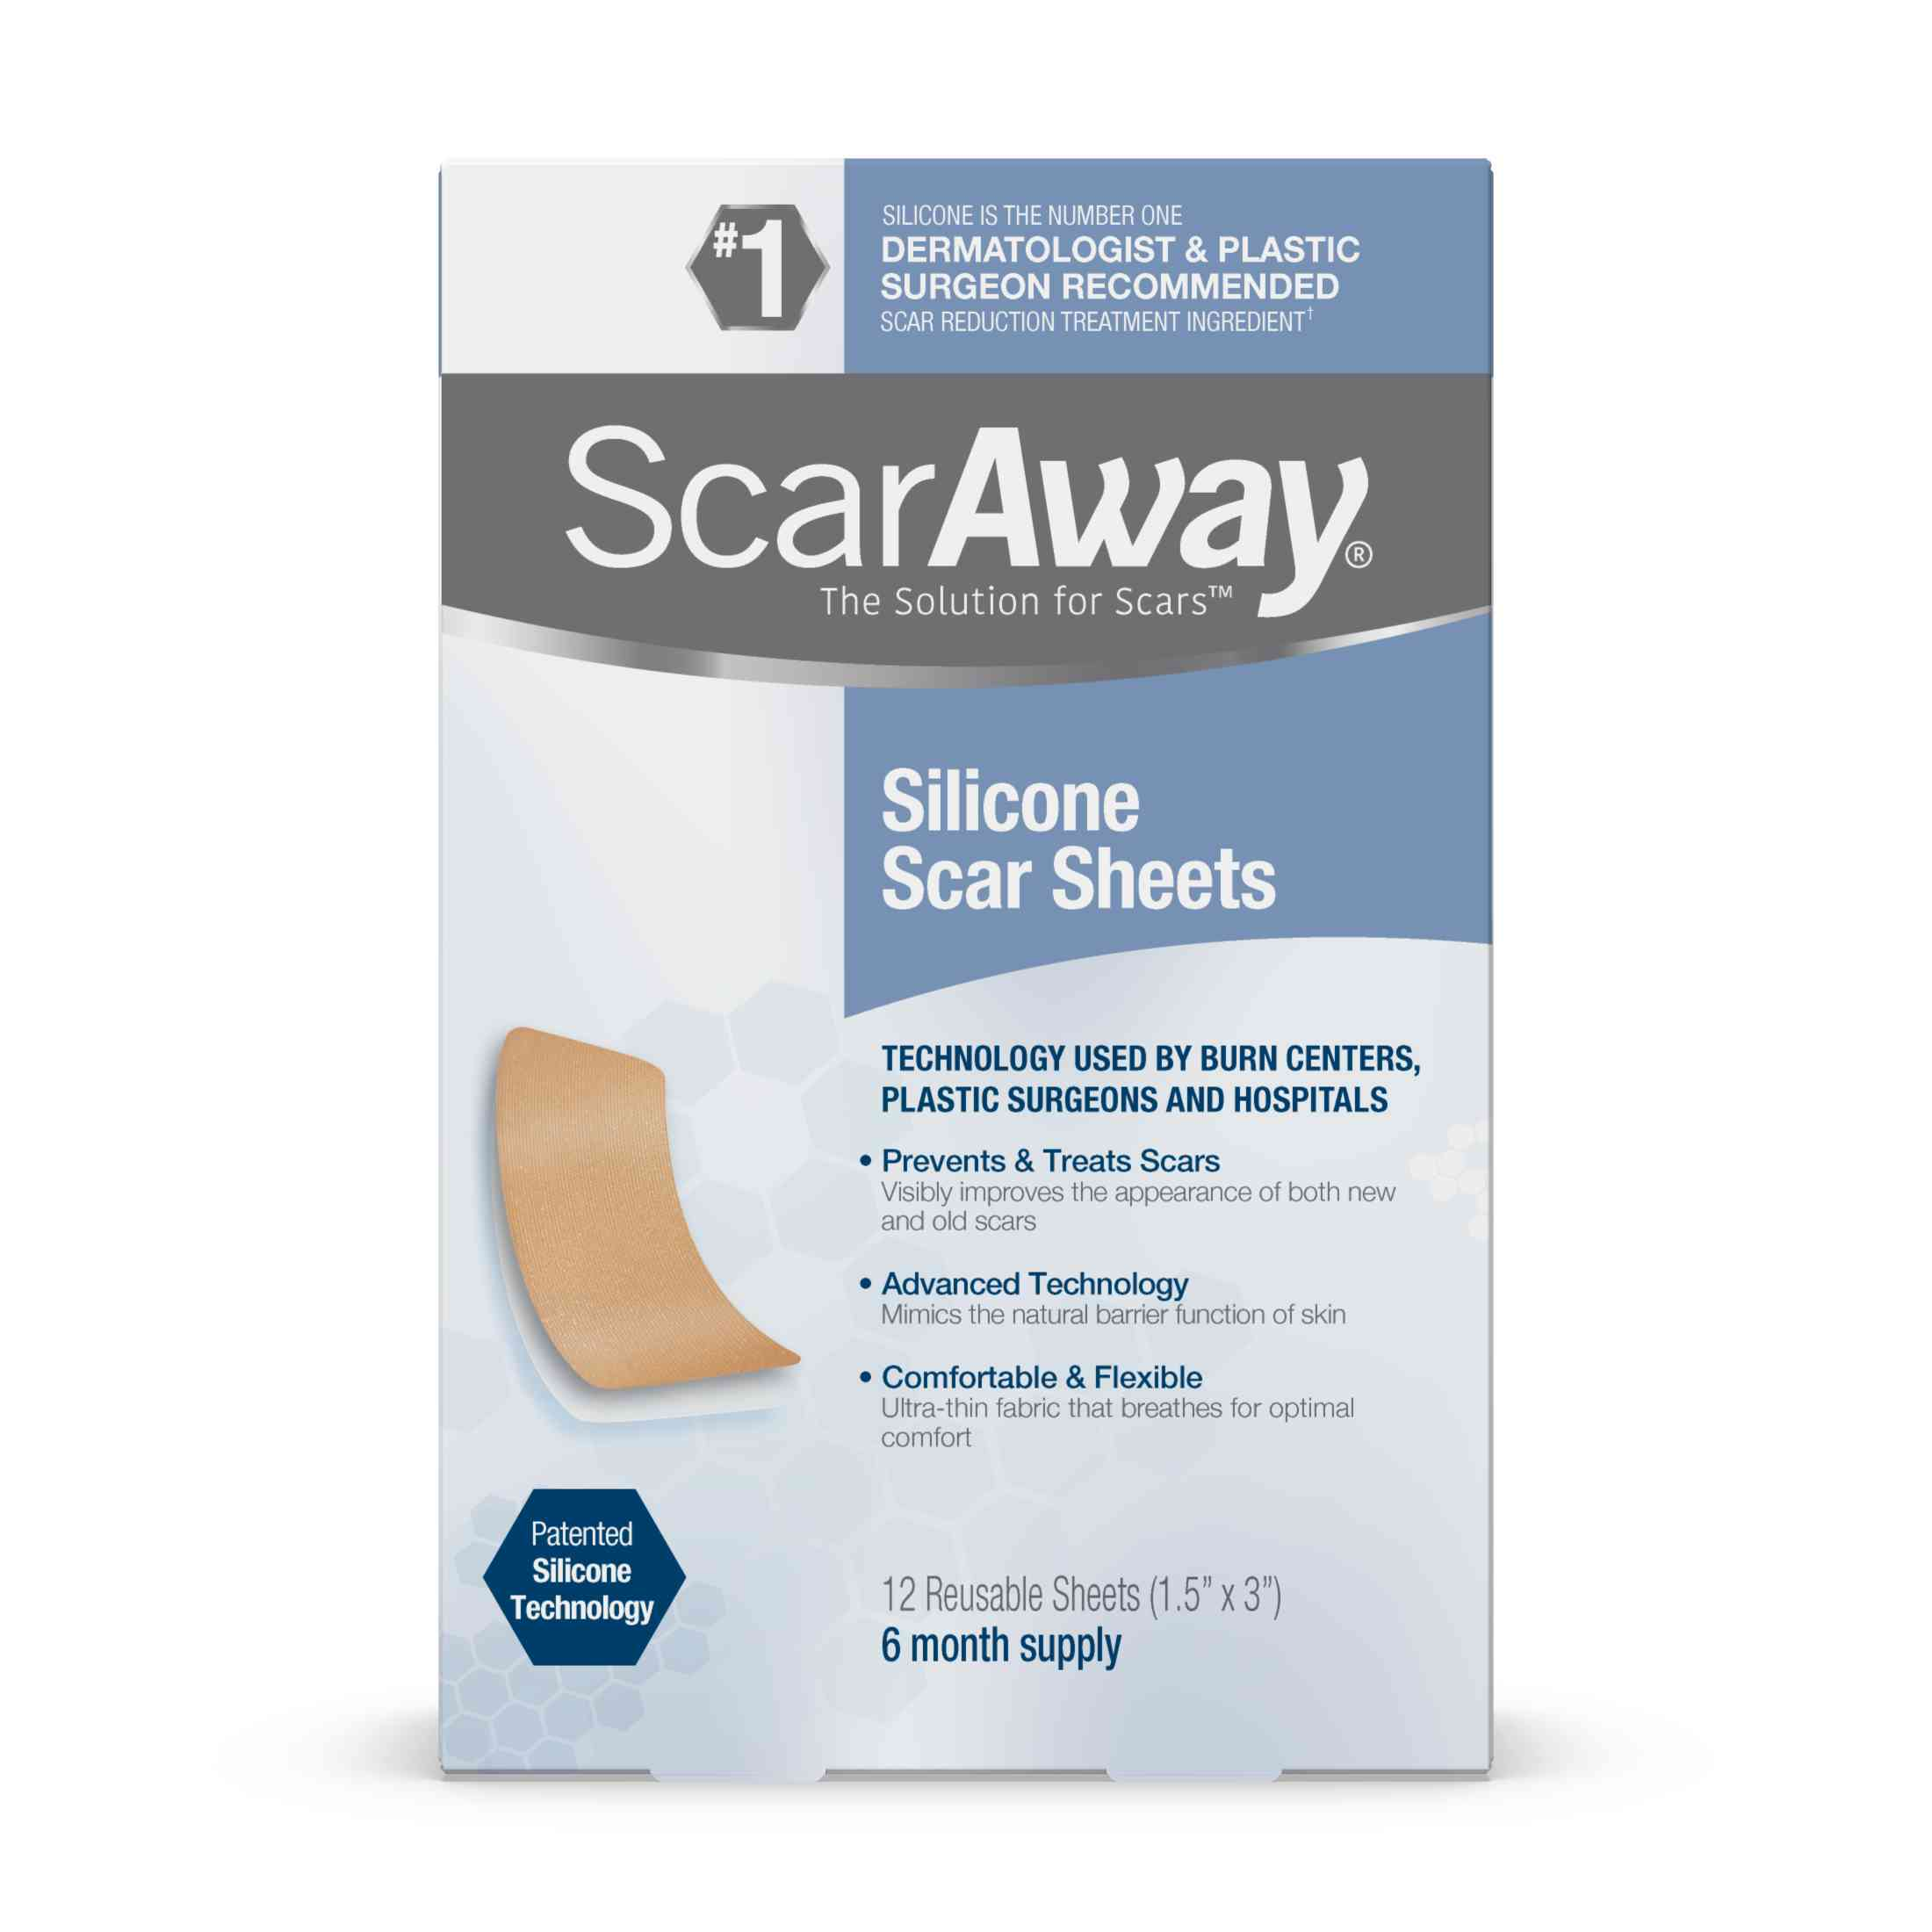 Scaraway Silicone Scar Sheets, 6 Month Supply, 12 Reusable Sheets